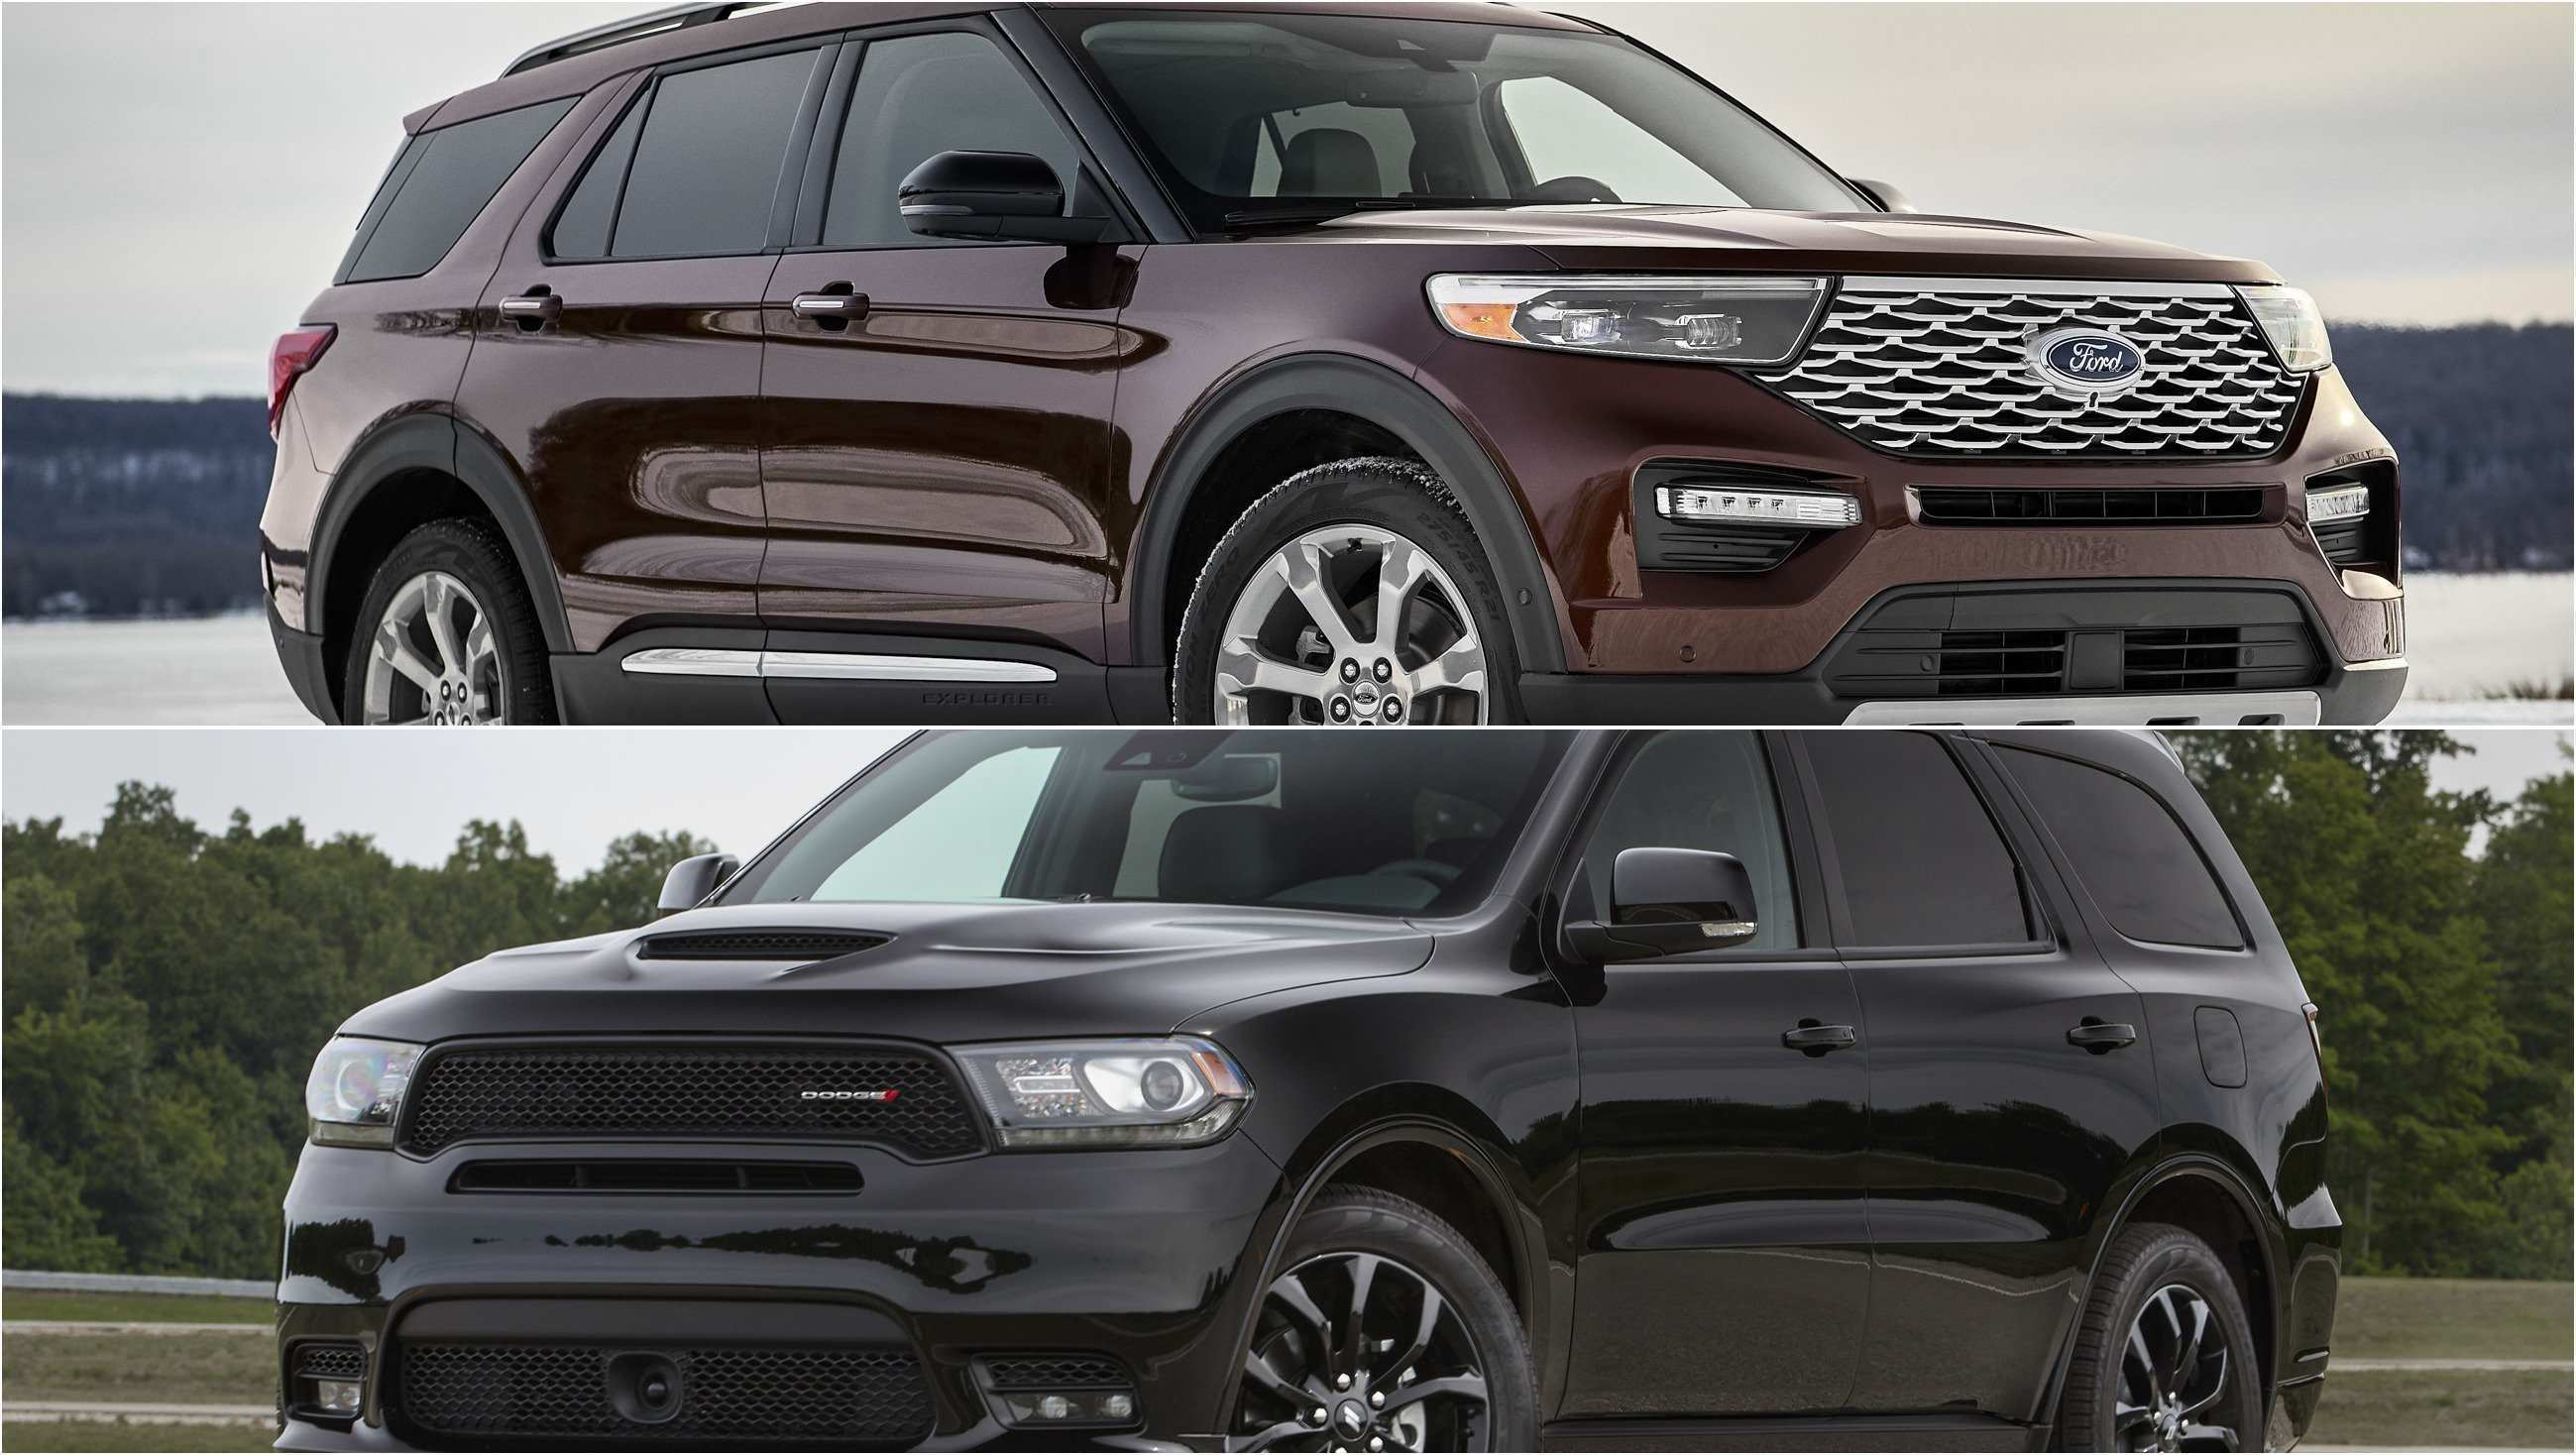 66 New 2020 Dodge Durango Model